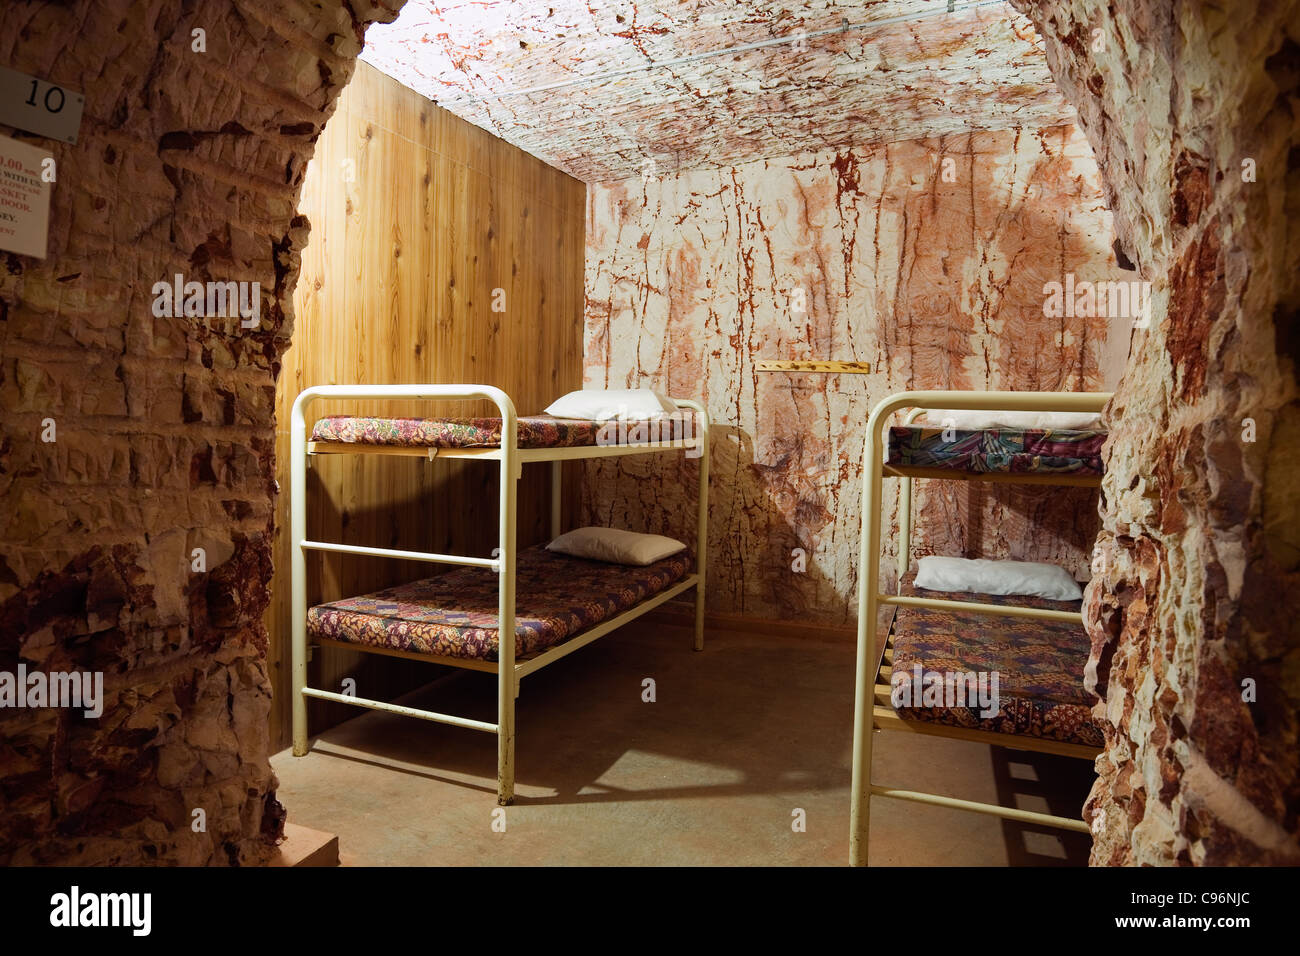 Underground accommodation at Radeka's Downunder Dugout Motel and Backpackers.  Coober Pedy, South Australia, - Stock Image